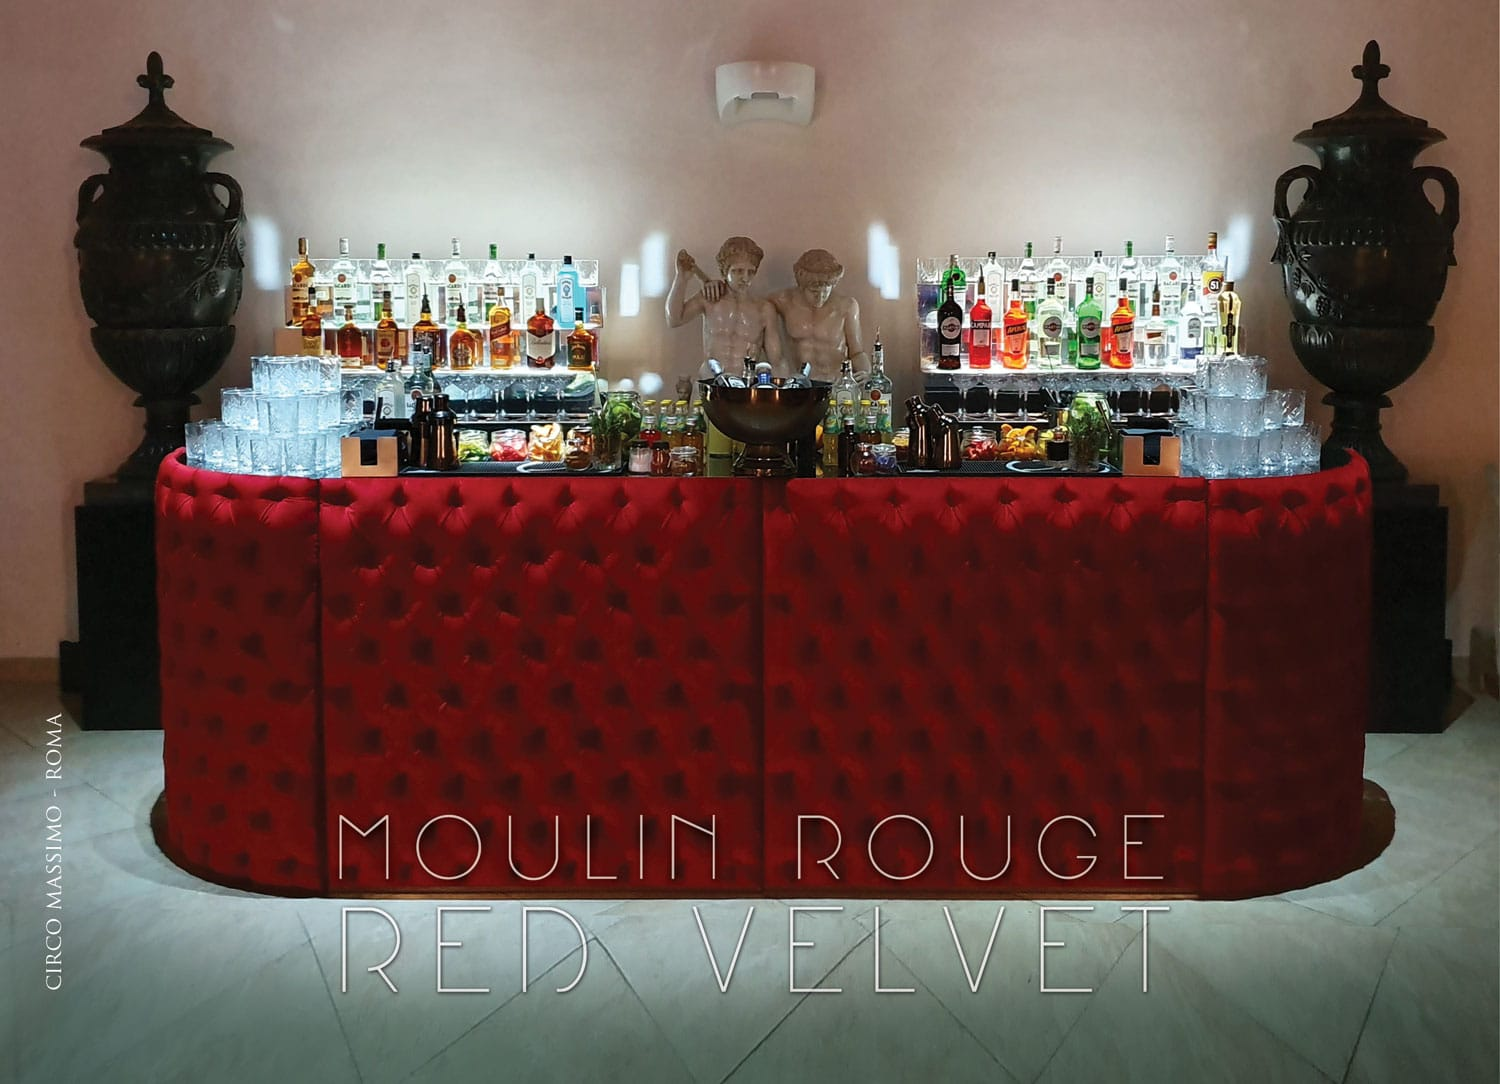 MOULIN ROUGE BAR